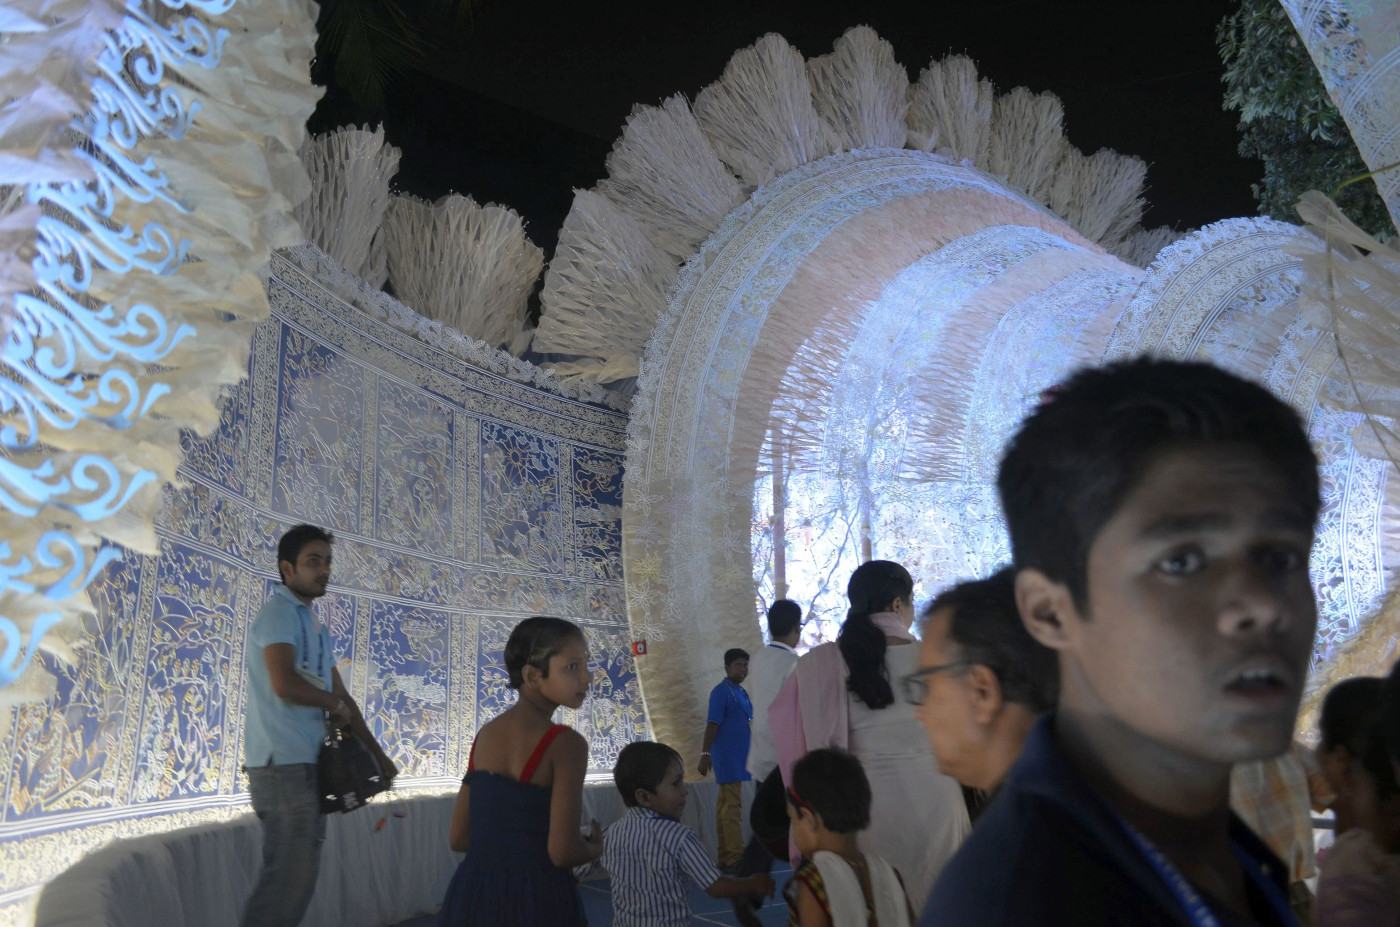 Blue light glowing from within, Kolkata Durga Puja 2015